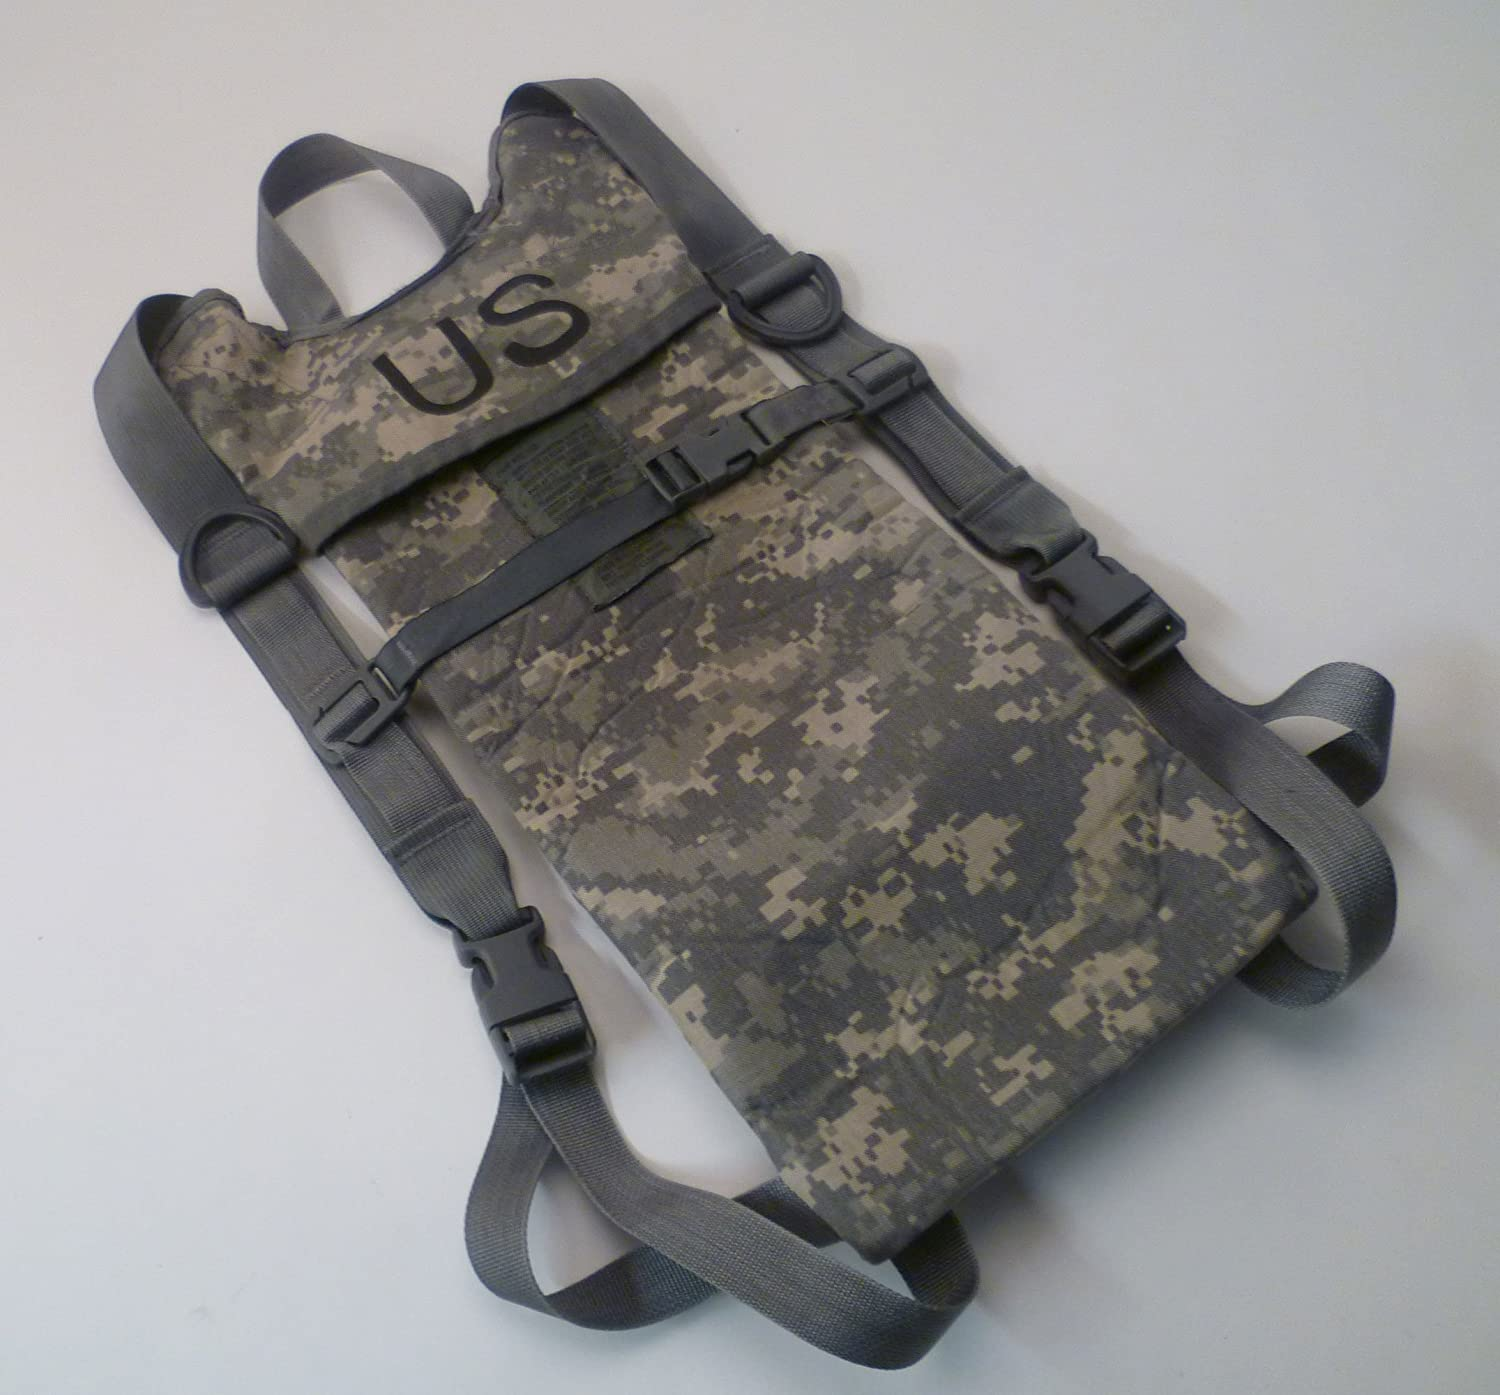 amazon com molle ii hydration pack carrier ucp urban camo